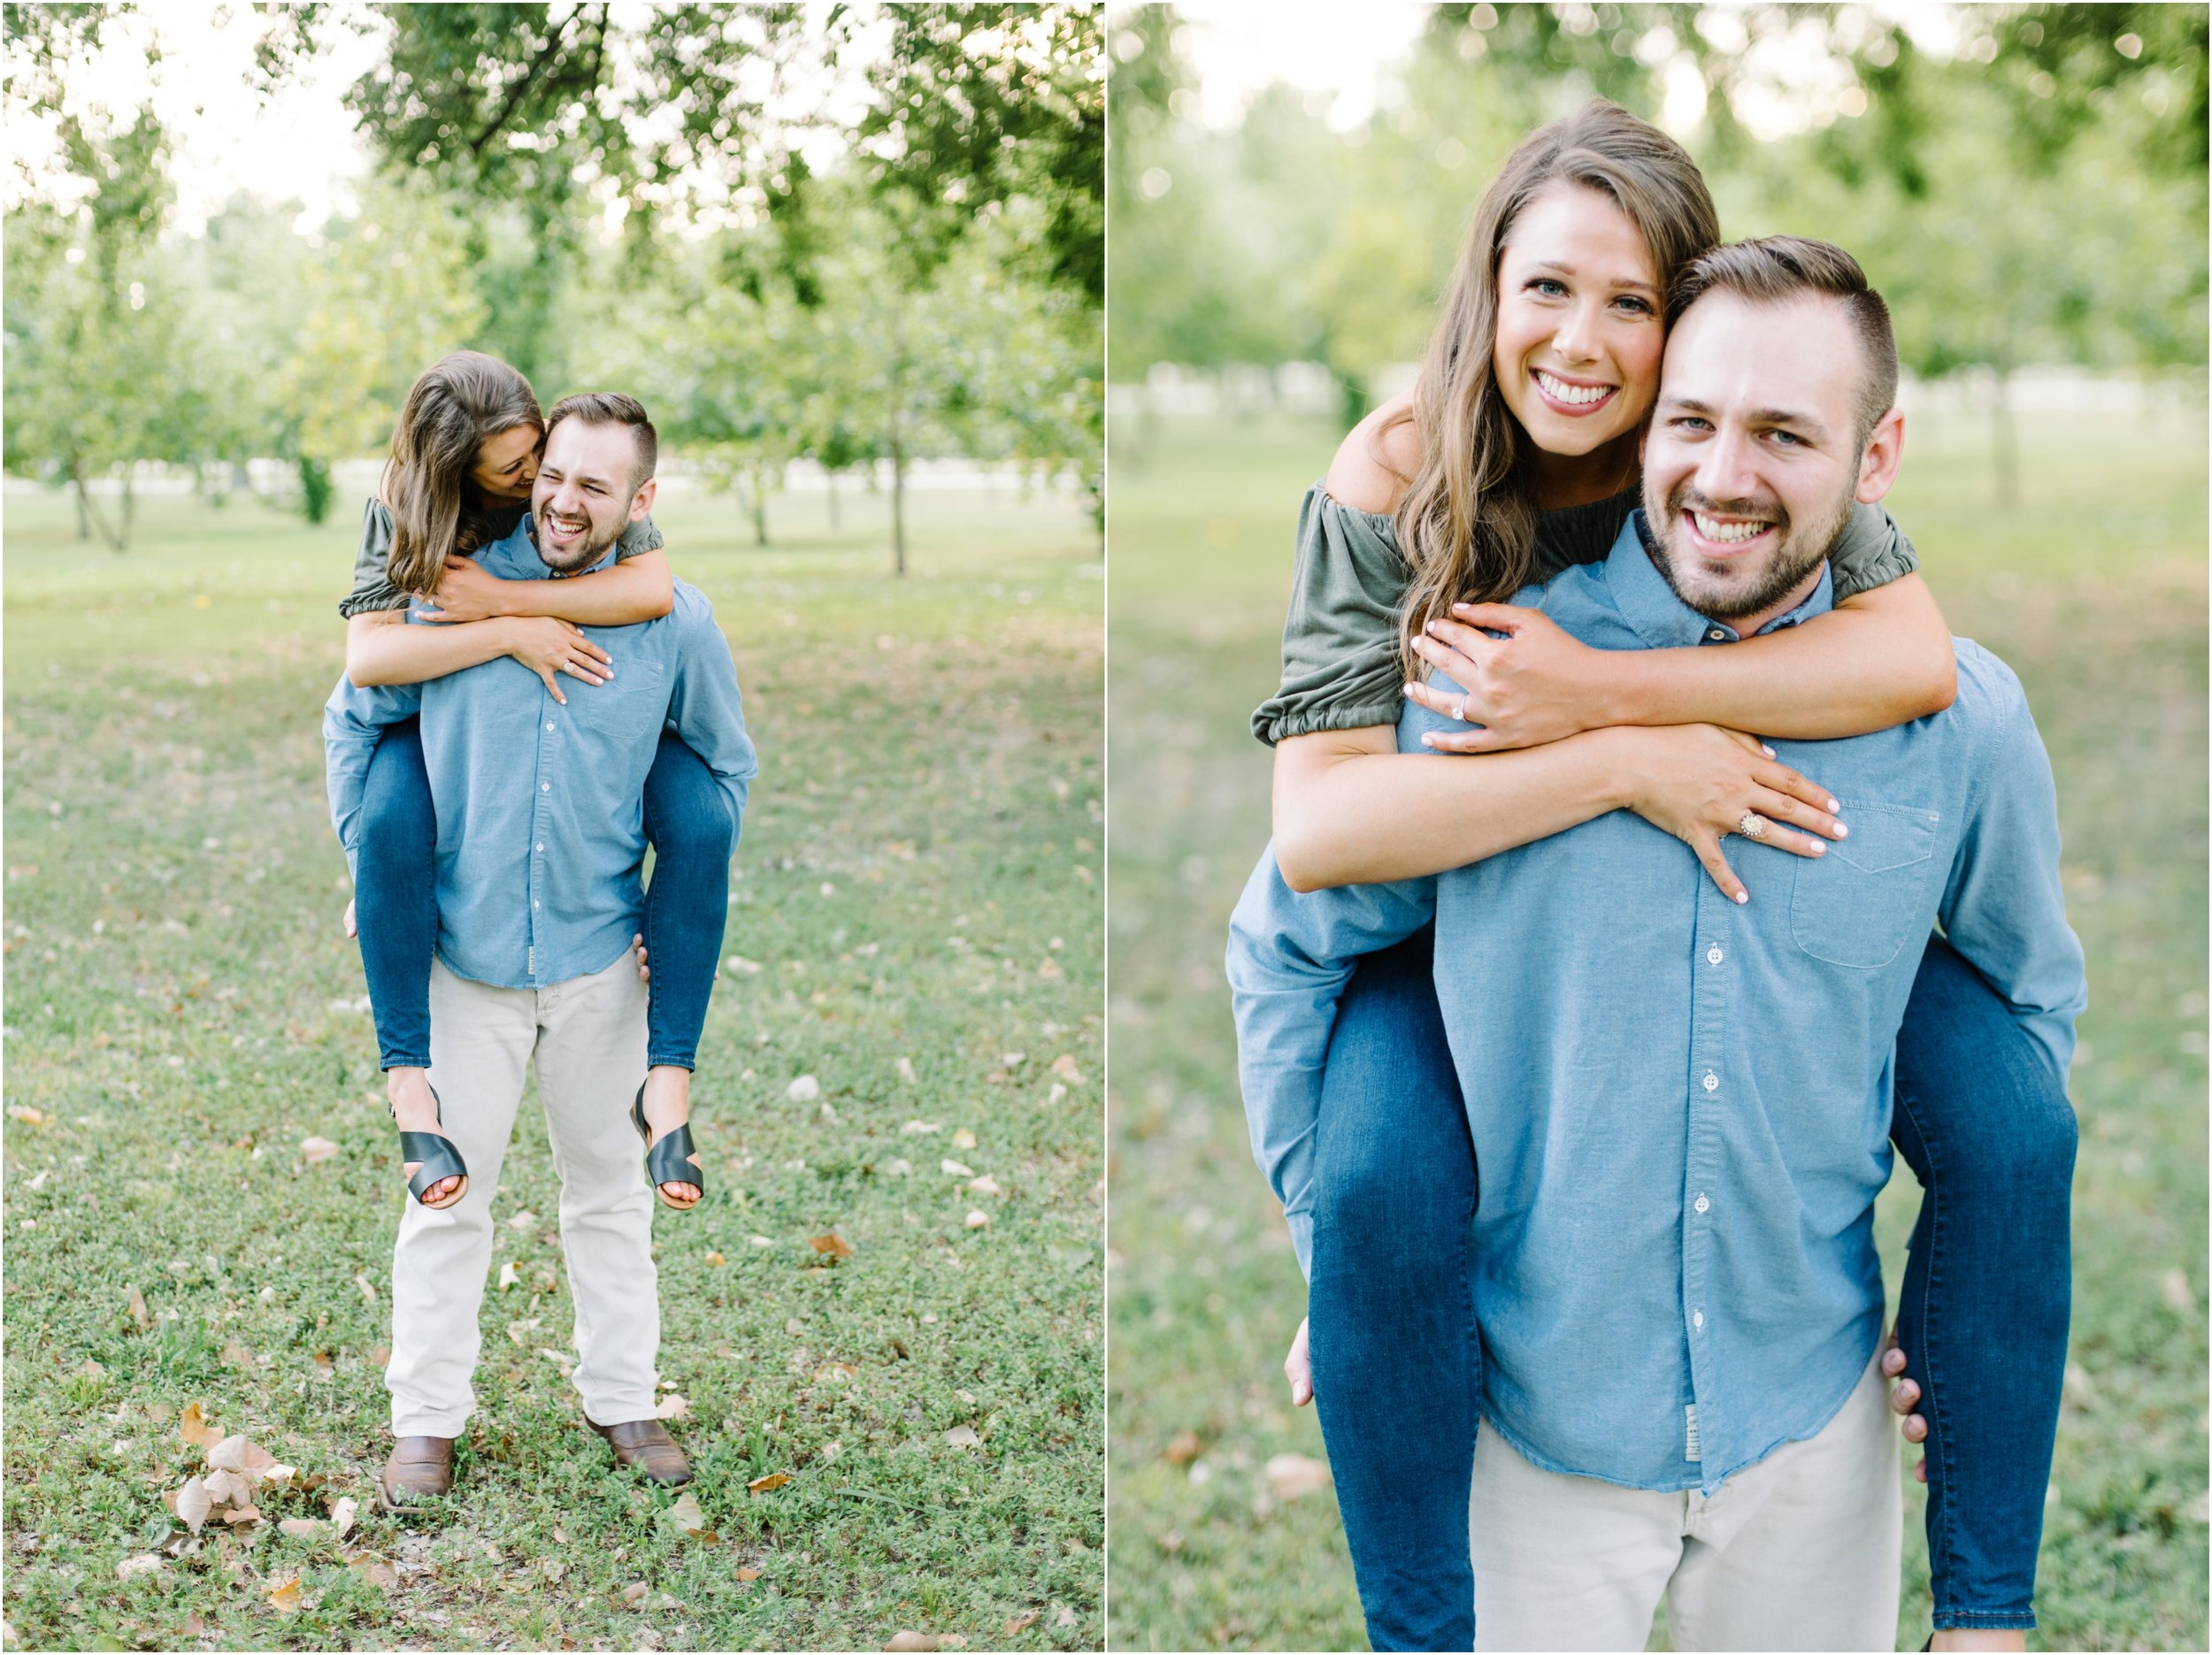 dallasweddingphotographer_texasweddingphotographer_mattandjulieweddings_modernfortworth_fortworthweddingphotographer_0887.jpg